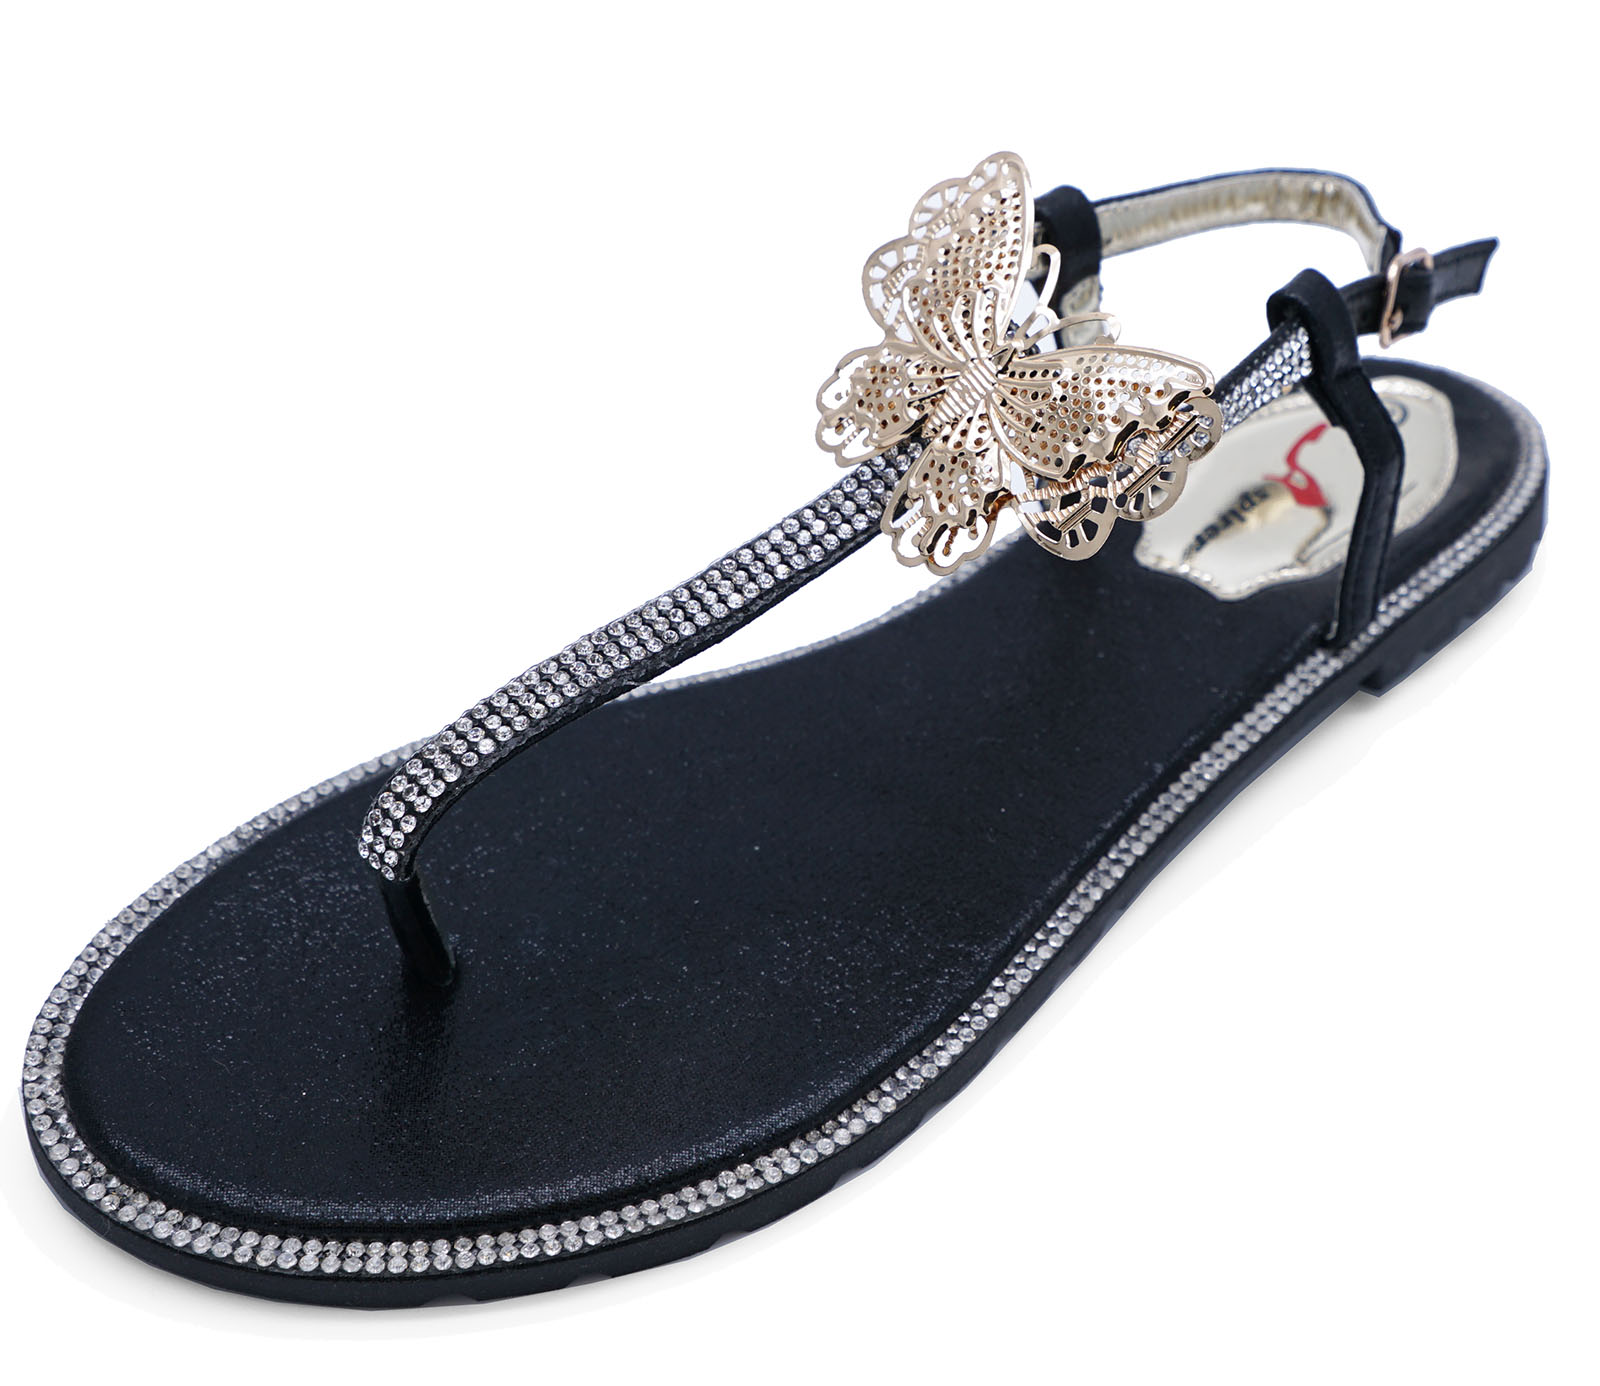 b2e4b26983ede Details about LADIES BLACK T-BAR FLAT DIAMANTE FLIP-FLOP COMFY SUMMER  SANDALS BEACH SHOES 3-8